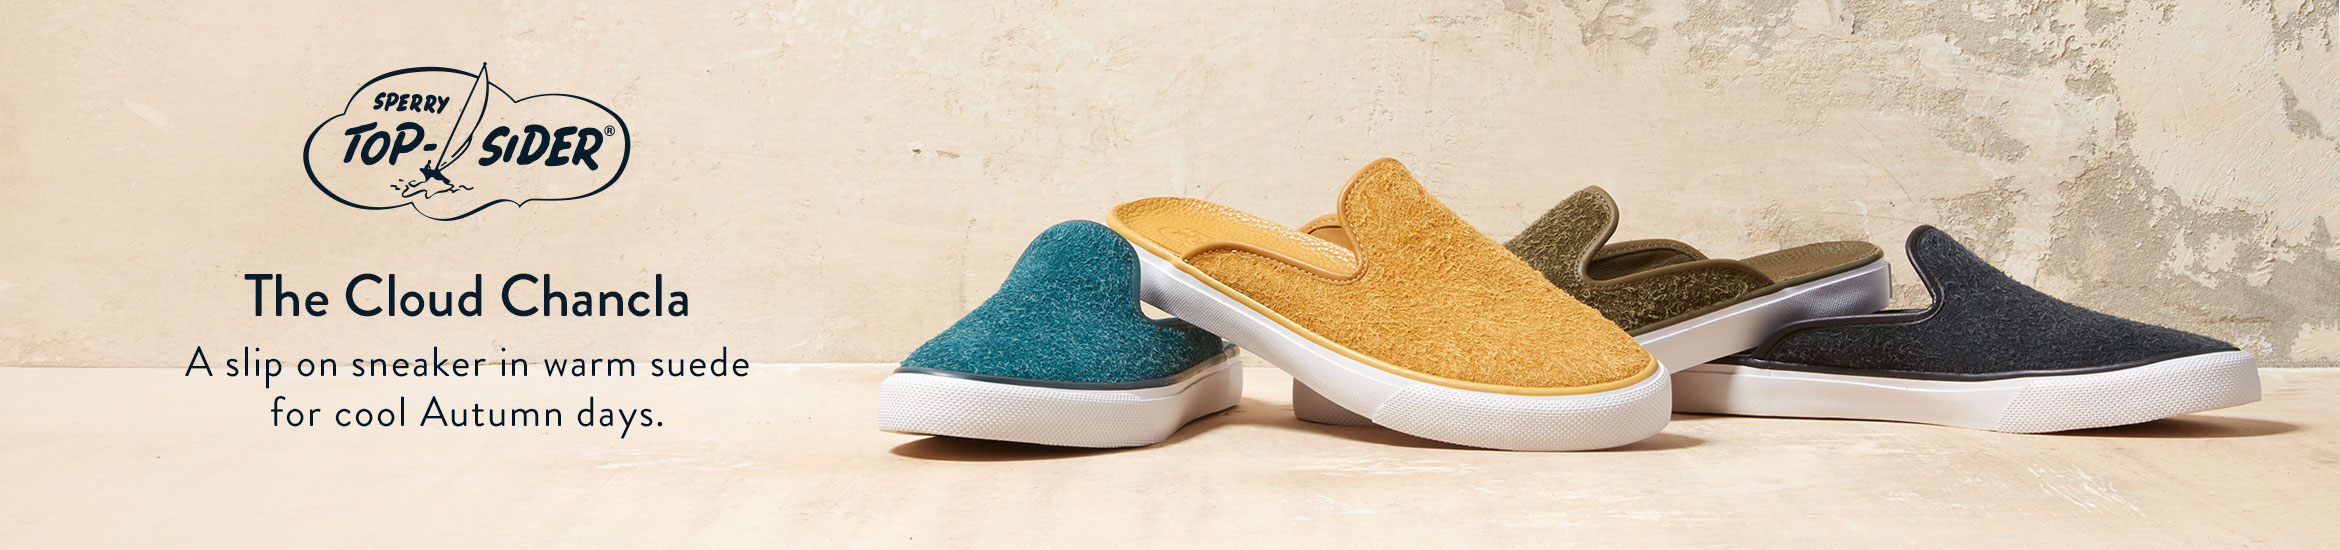 The Sperry Cloud Chancla - A slip on sneaker in warm suede for cool Autumn days.